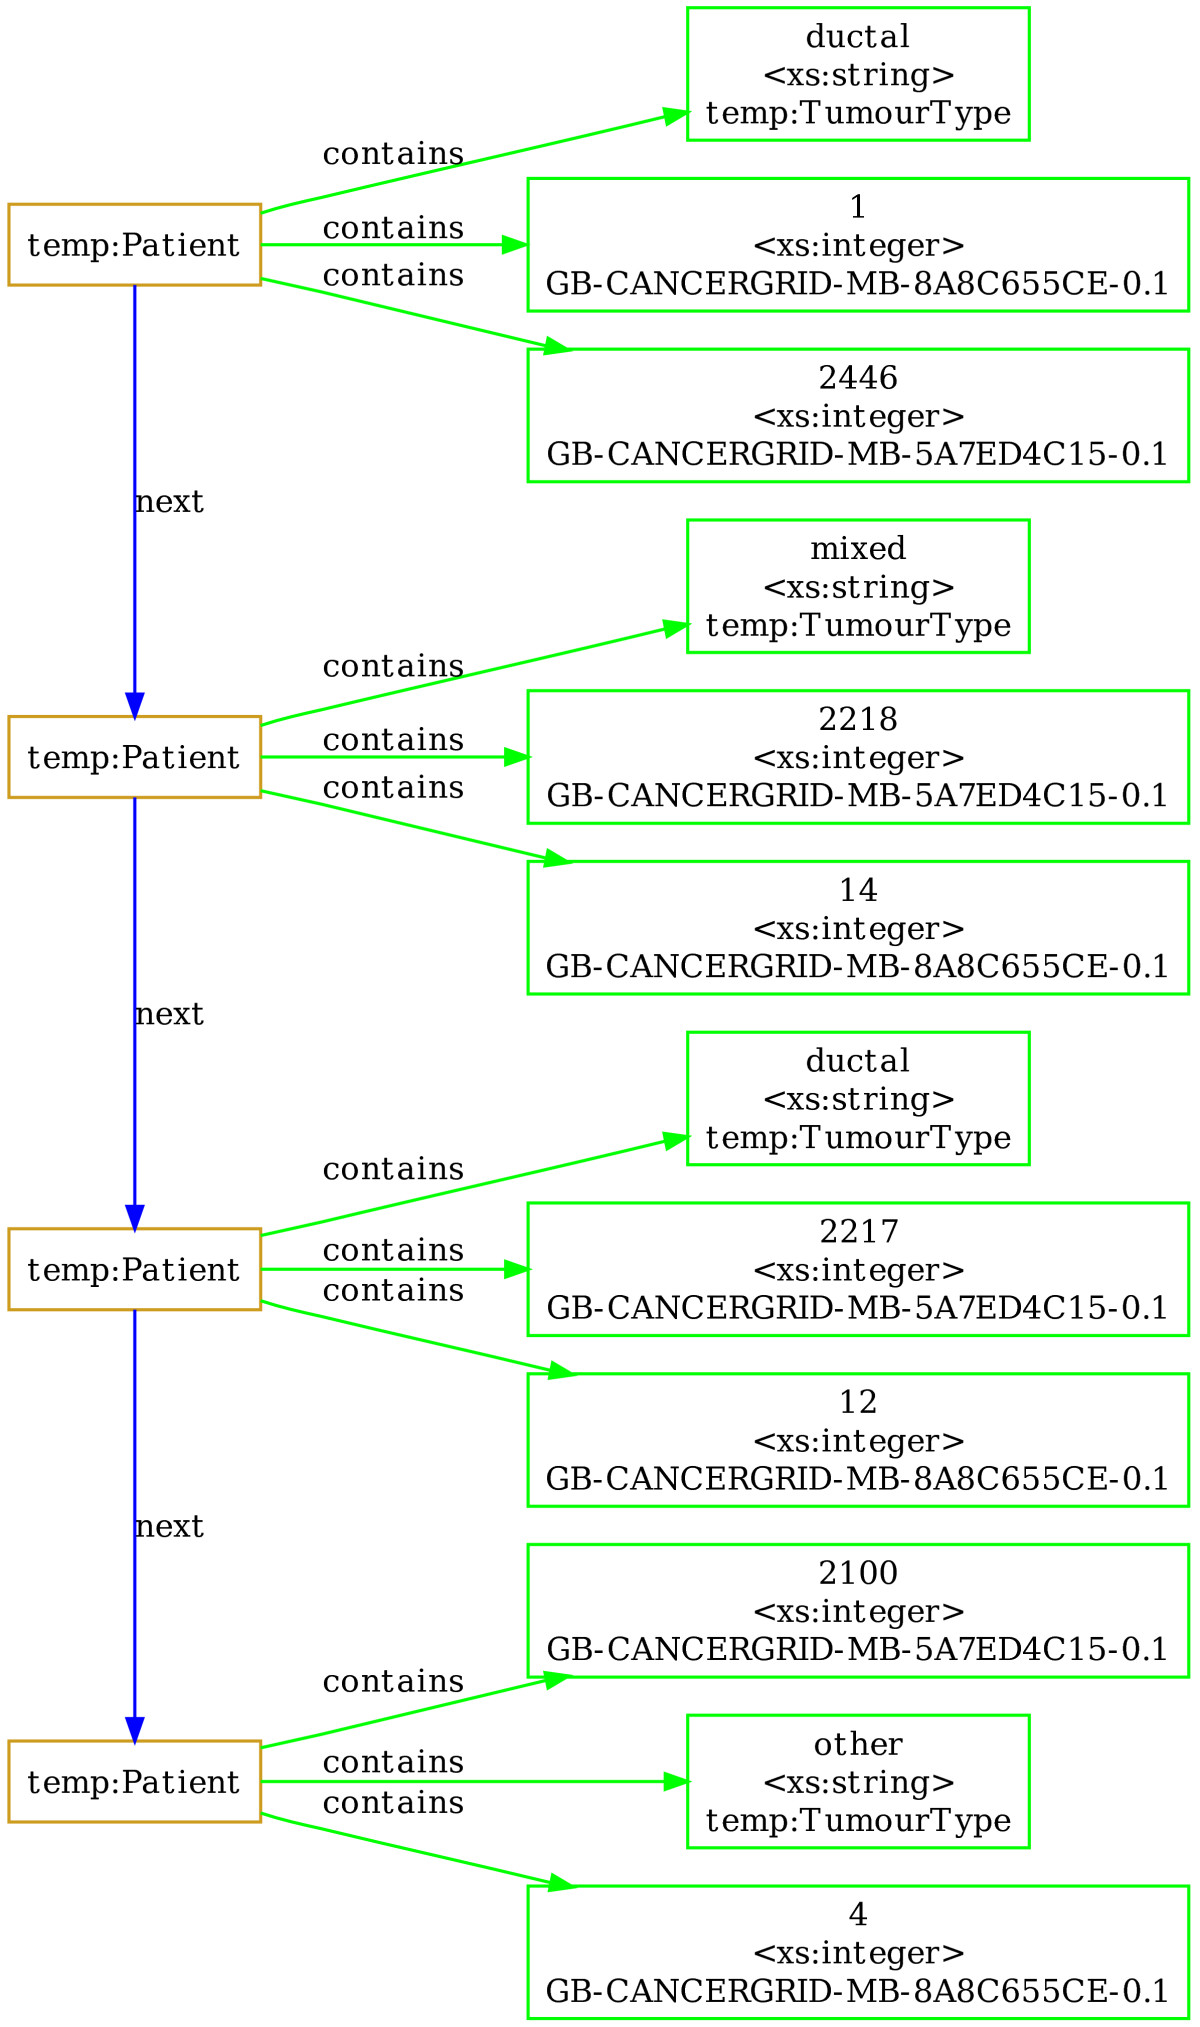 http://static-content.springer.com/image/art%3A10.1186%2F1755-8794-2-66/MediaObjects/12920_2009_Article_130_Fig9_HTML.jpg